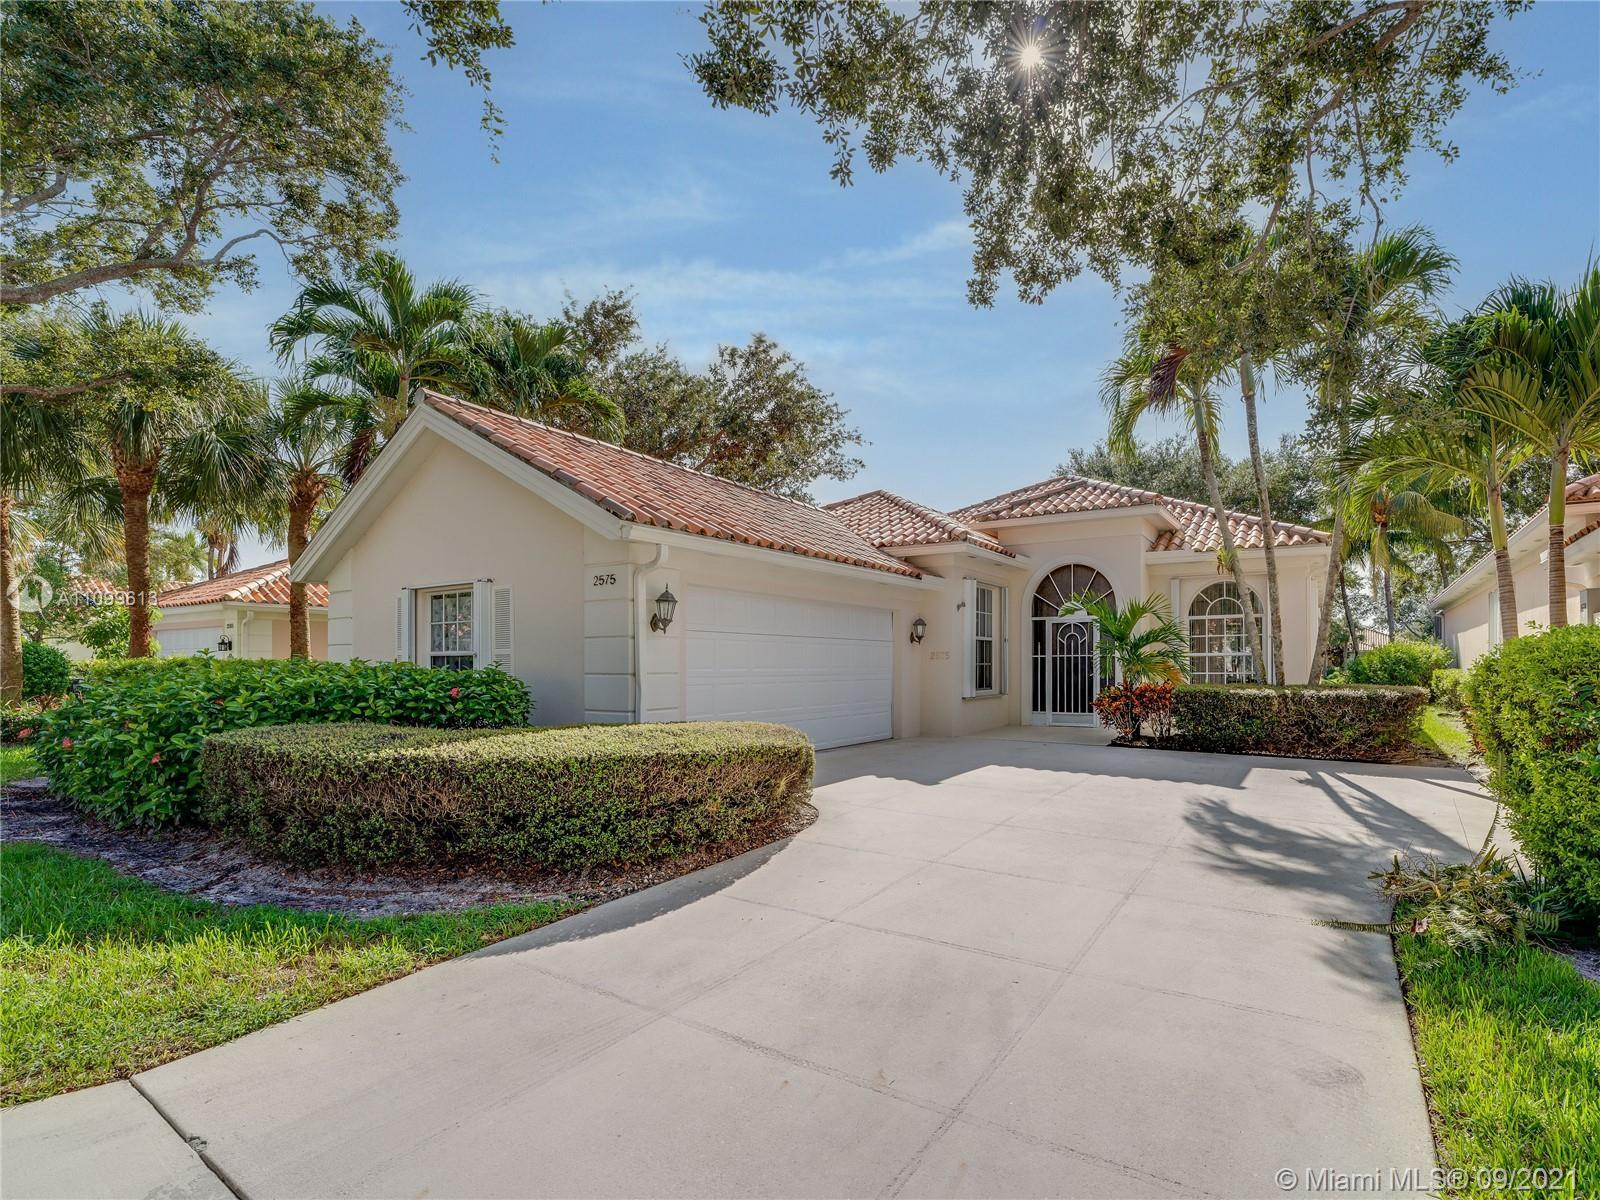 LOCATION! EXCELLENT 4/2 WITH POOL IN SPECTACULAR COMMUNITY OF RIVERWALK, WITH CARPETS AND PRIVATE SW